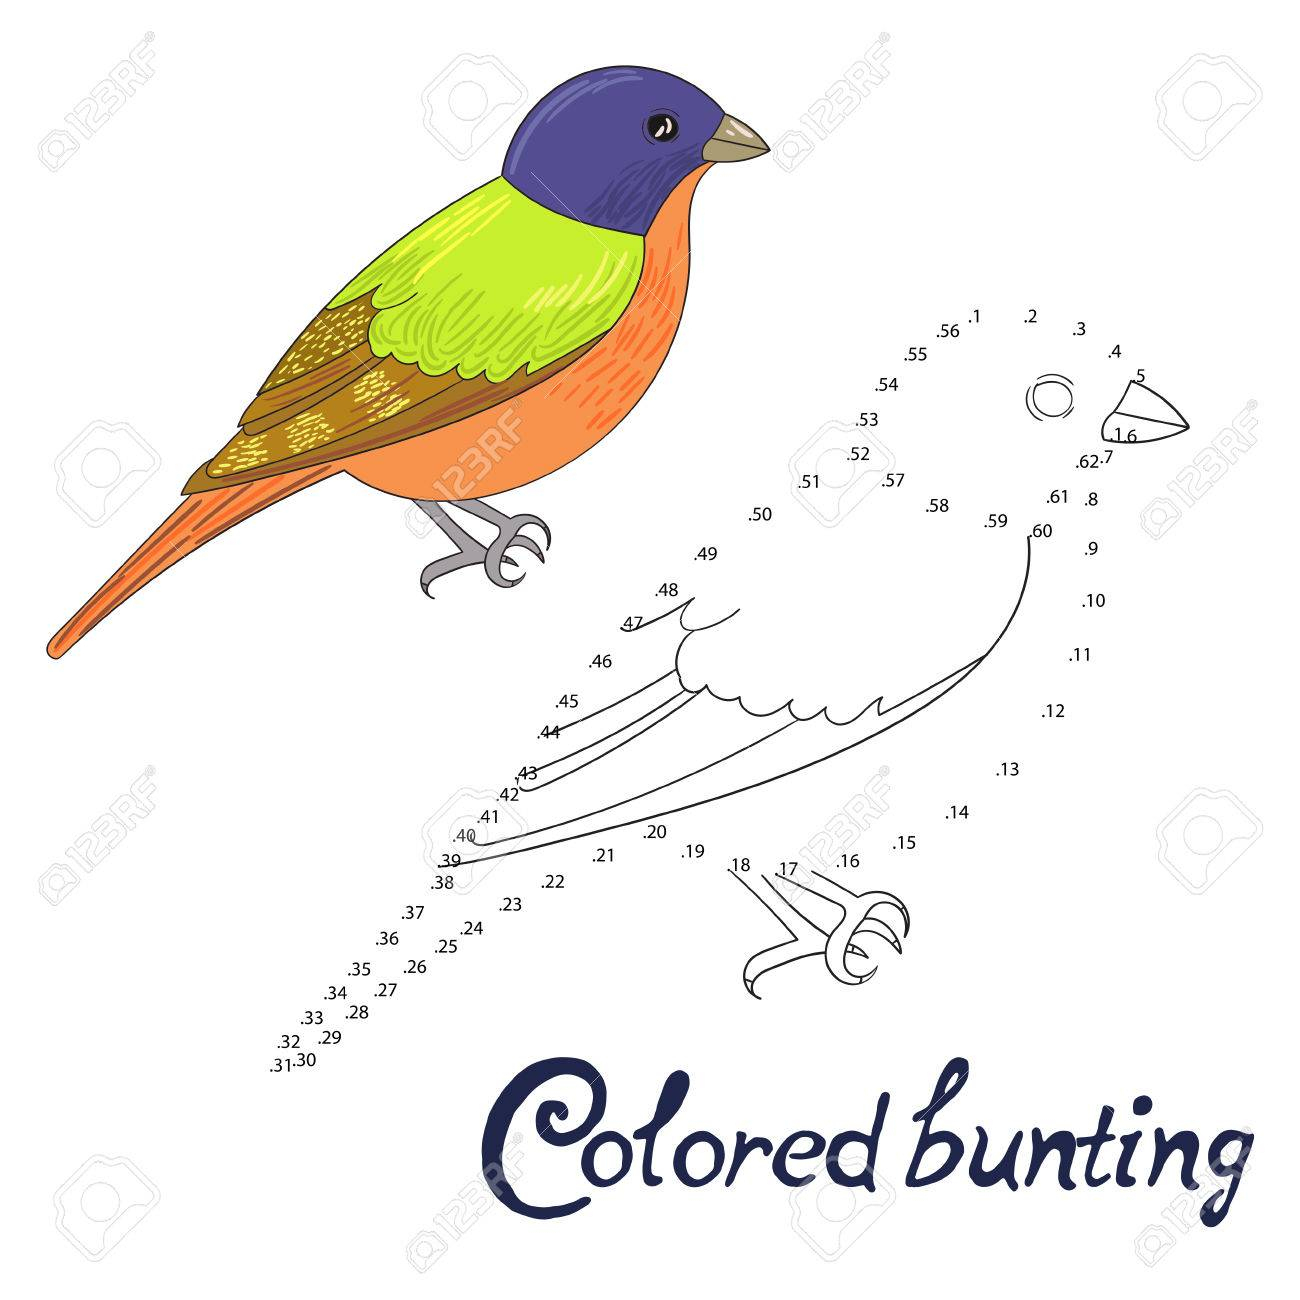 Jeu Éducatif Relier Les Points Pour Dessiner Le Bruant De Couleur Doodle De  Bande Dessinée D'oiseau Main Illustration Vectorielle Dessinée serapportantà Relier Les Points De 1 À 30